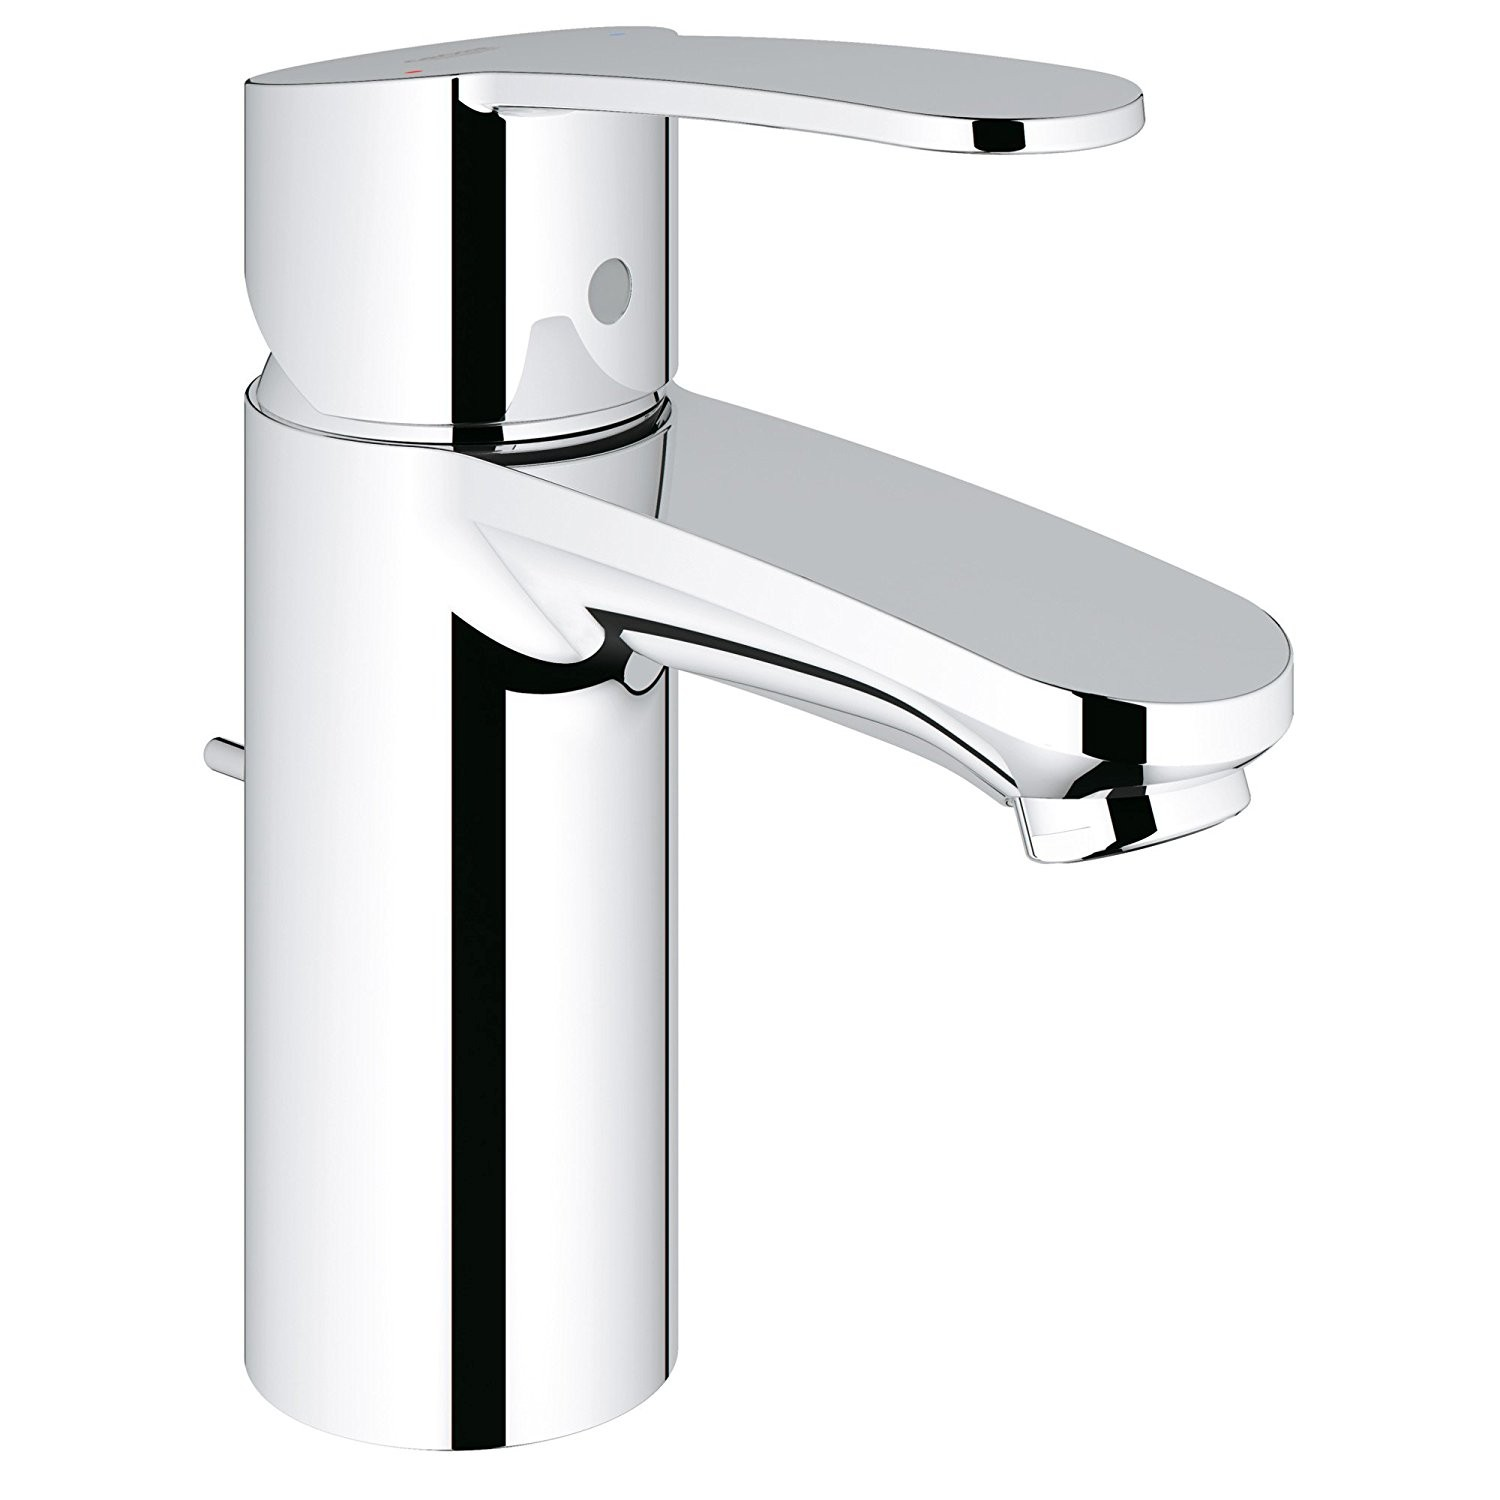 grohe touchless bathroom faucet Archives - Bathroom Gallery Image ...